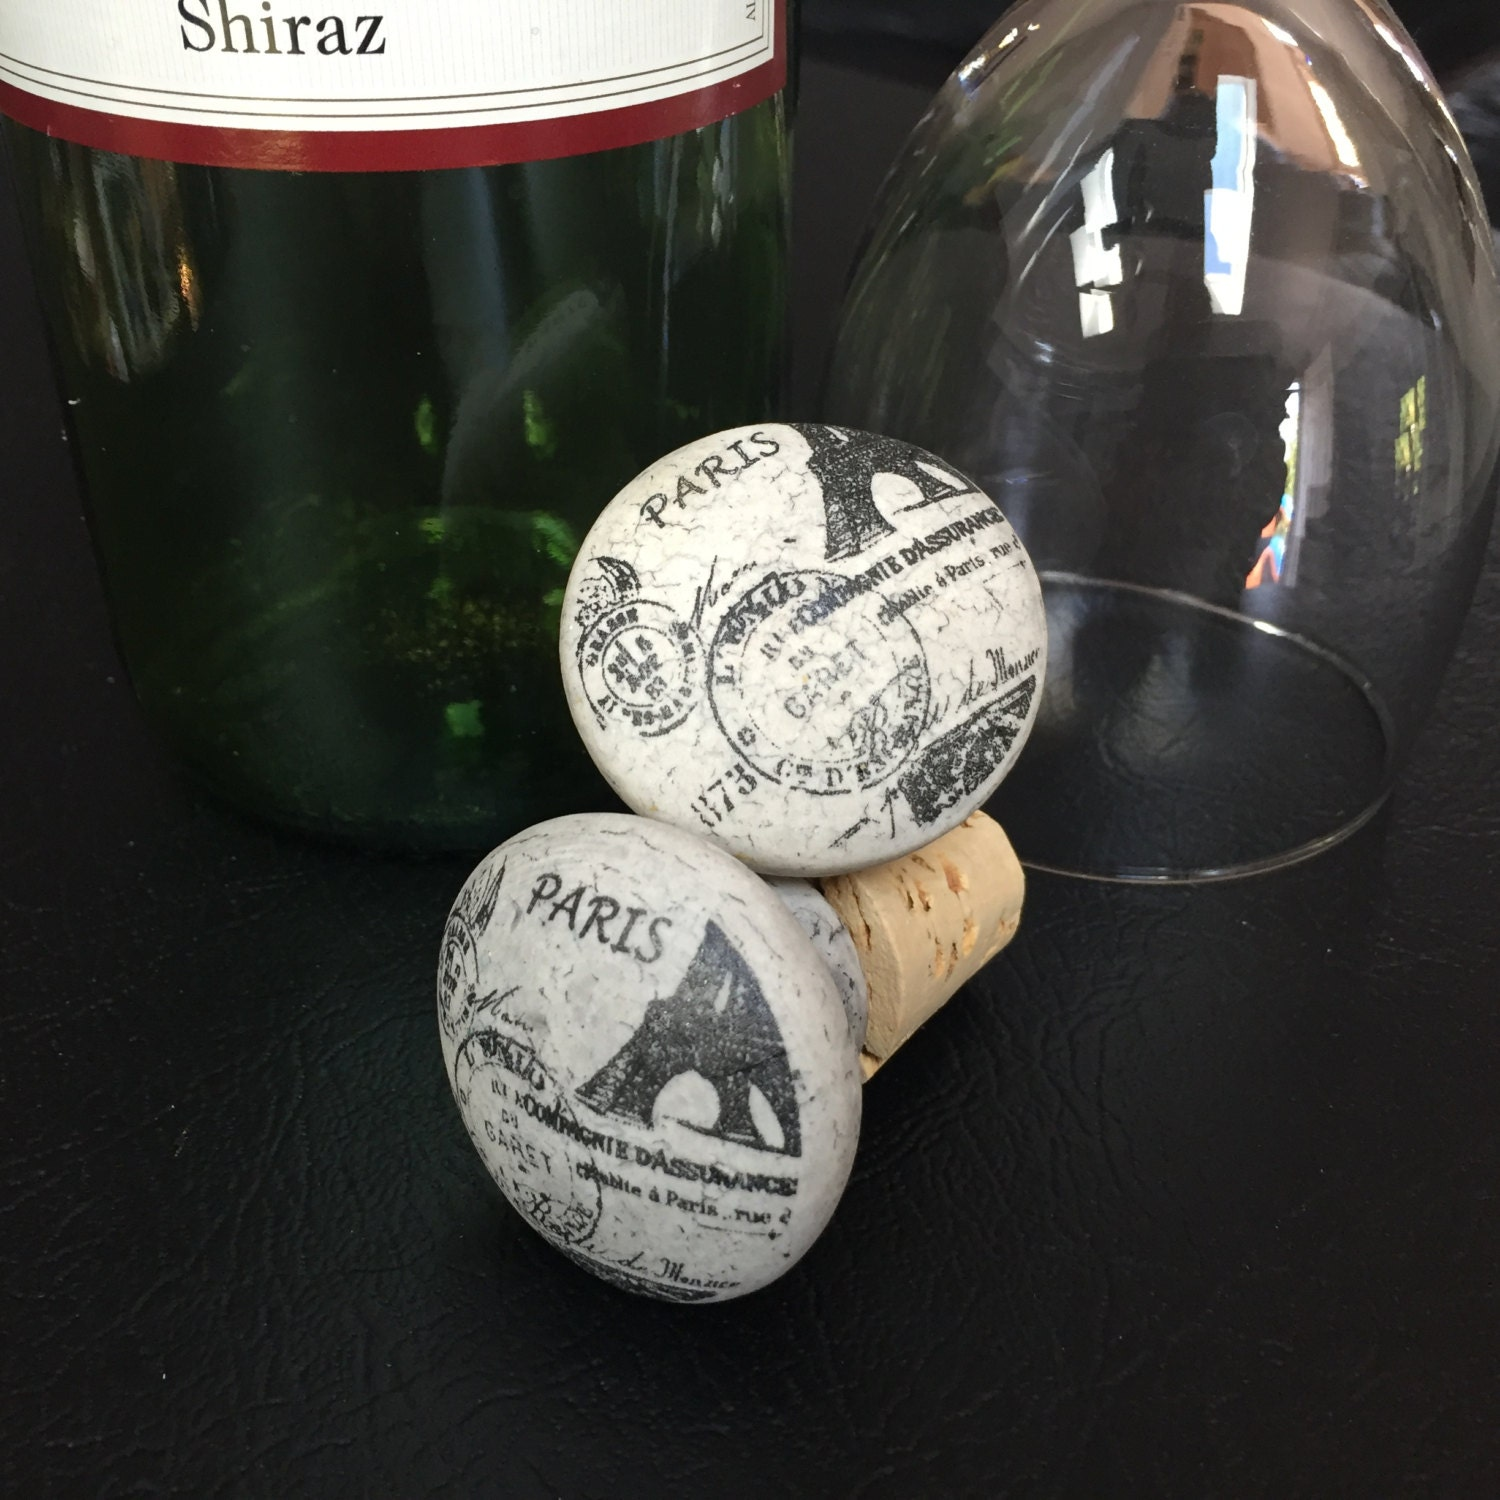 Kitchen Cabinet Handles Cork: Repurposed Vintage Look Cabinet Knob Wine Bottle Stopper